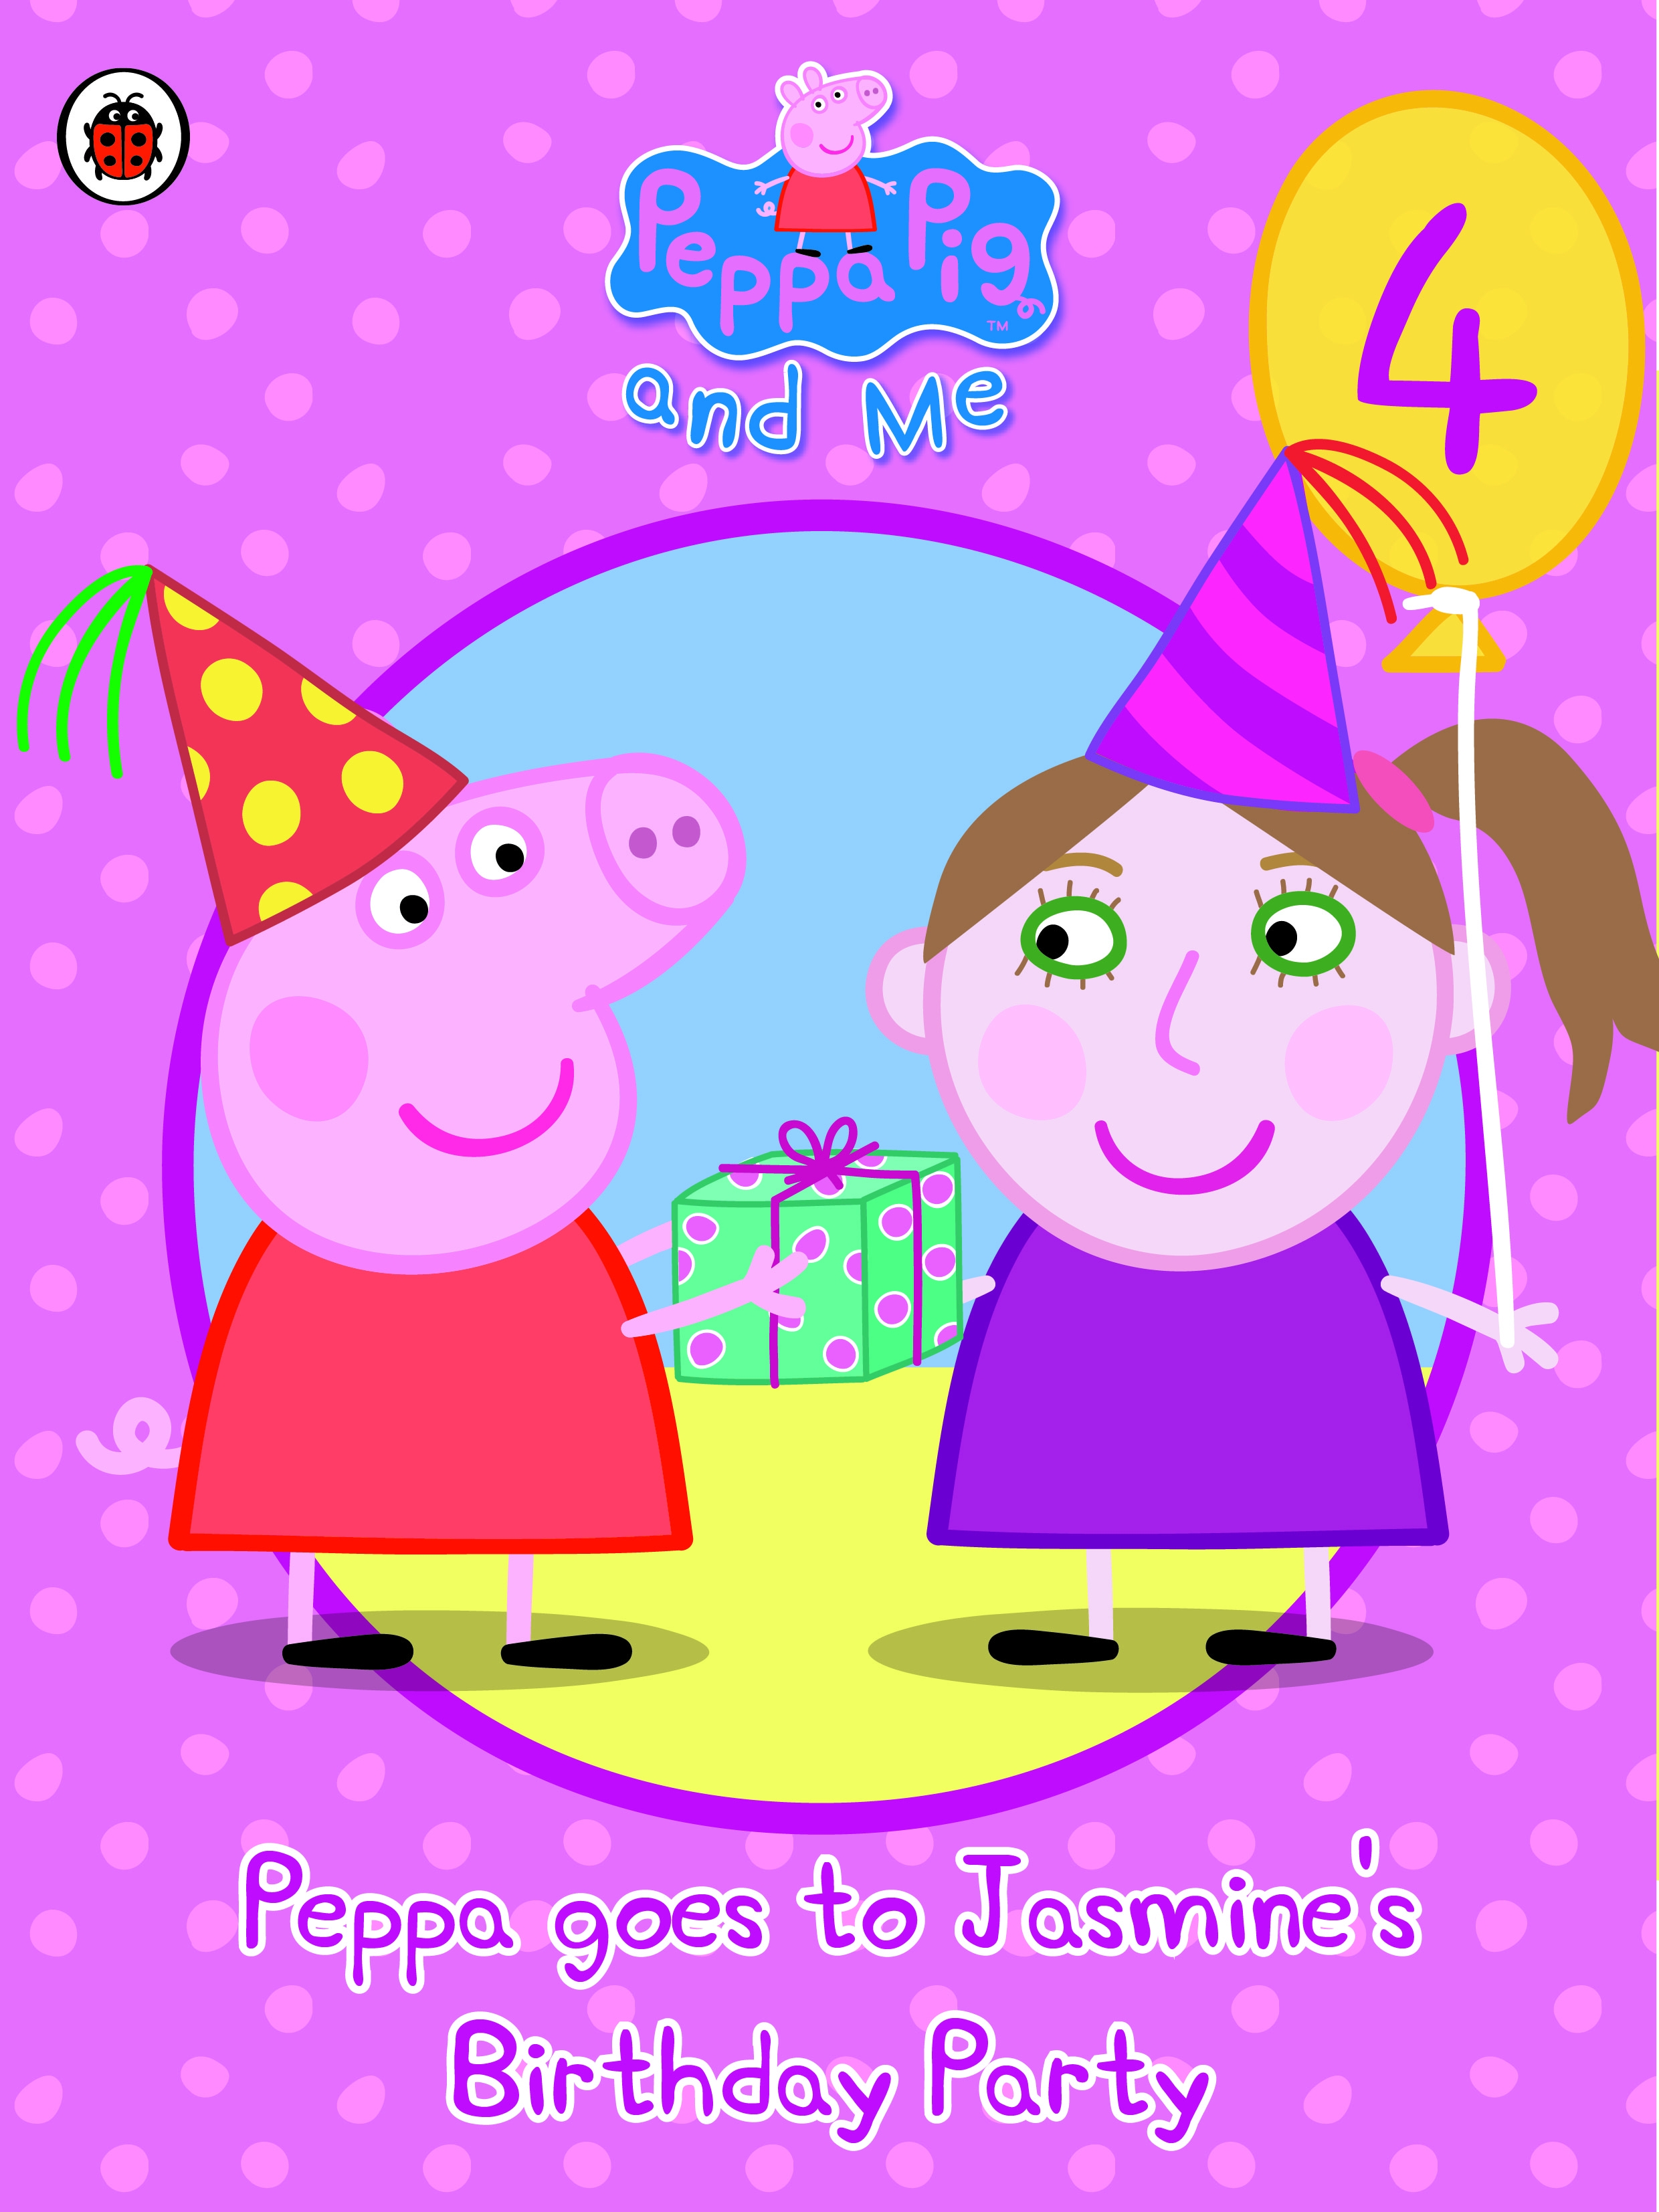 Peppa Pig   Immagini varie   Oasi delle anime   HD Wallpapers 2480x3307